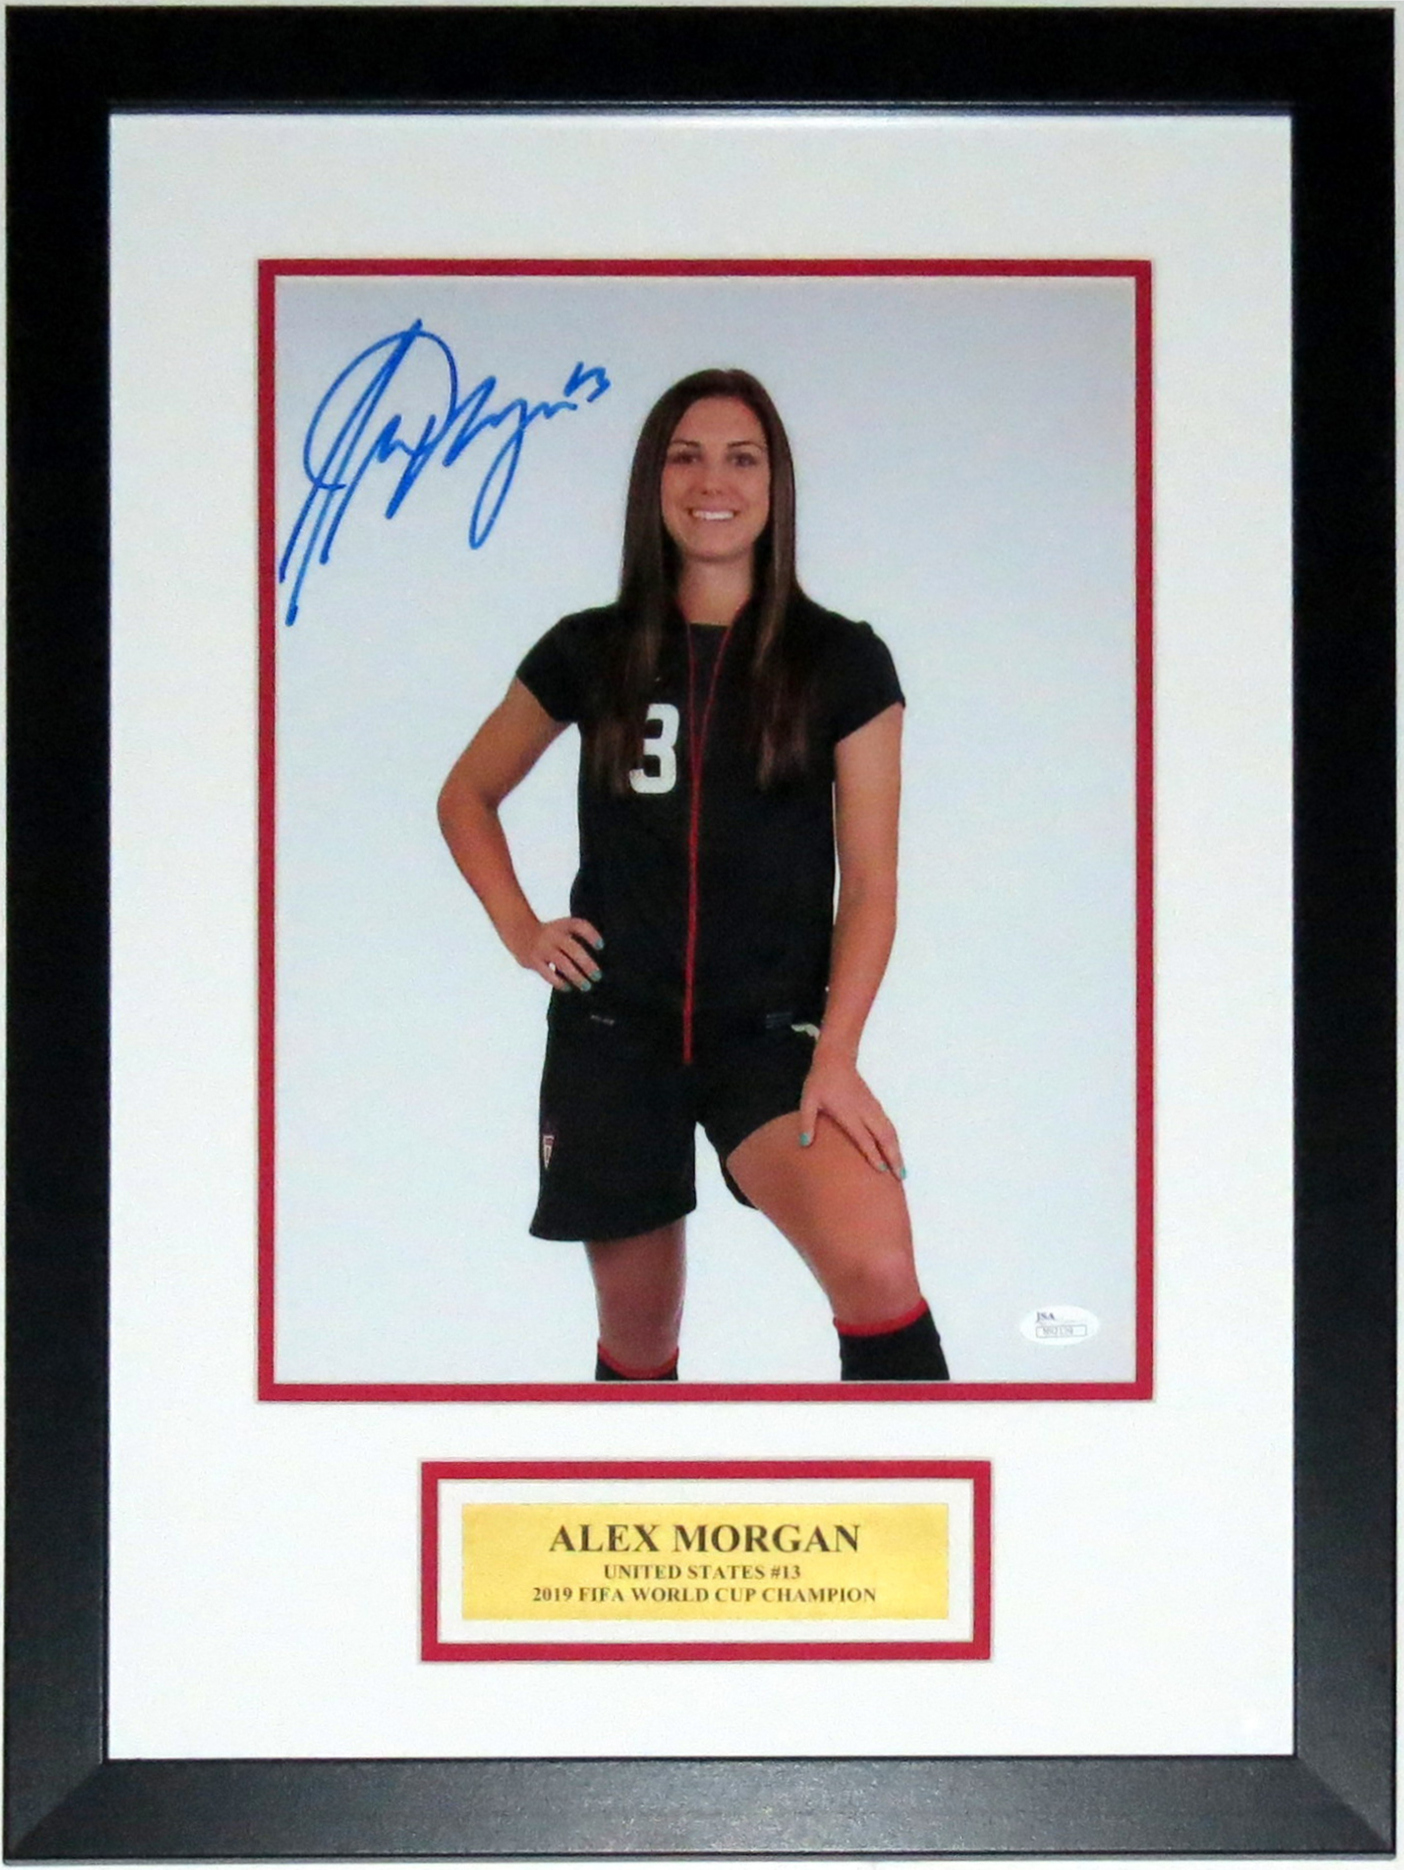 Alex Morgan Signed 2019 Team USA World Cup 11x14 Photo - JSA COA Authenticated - Professionally Framed & Plate